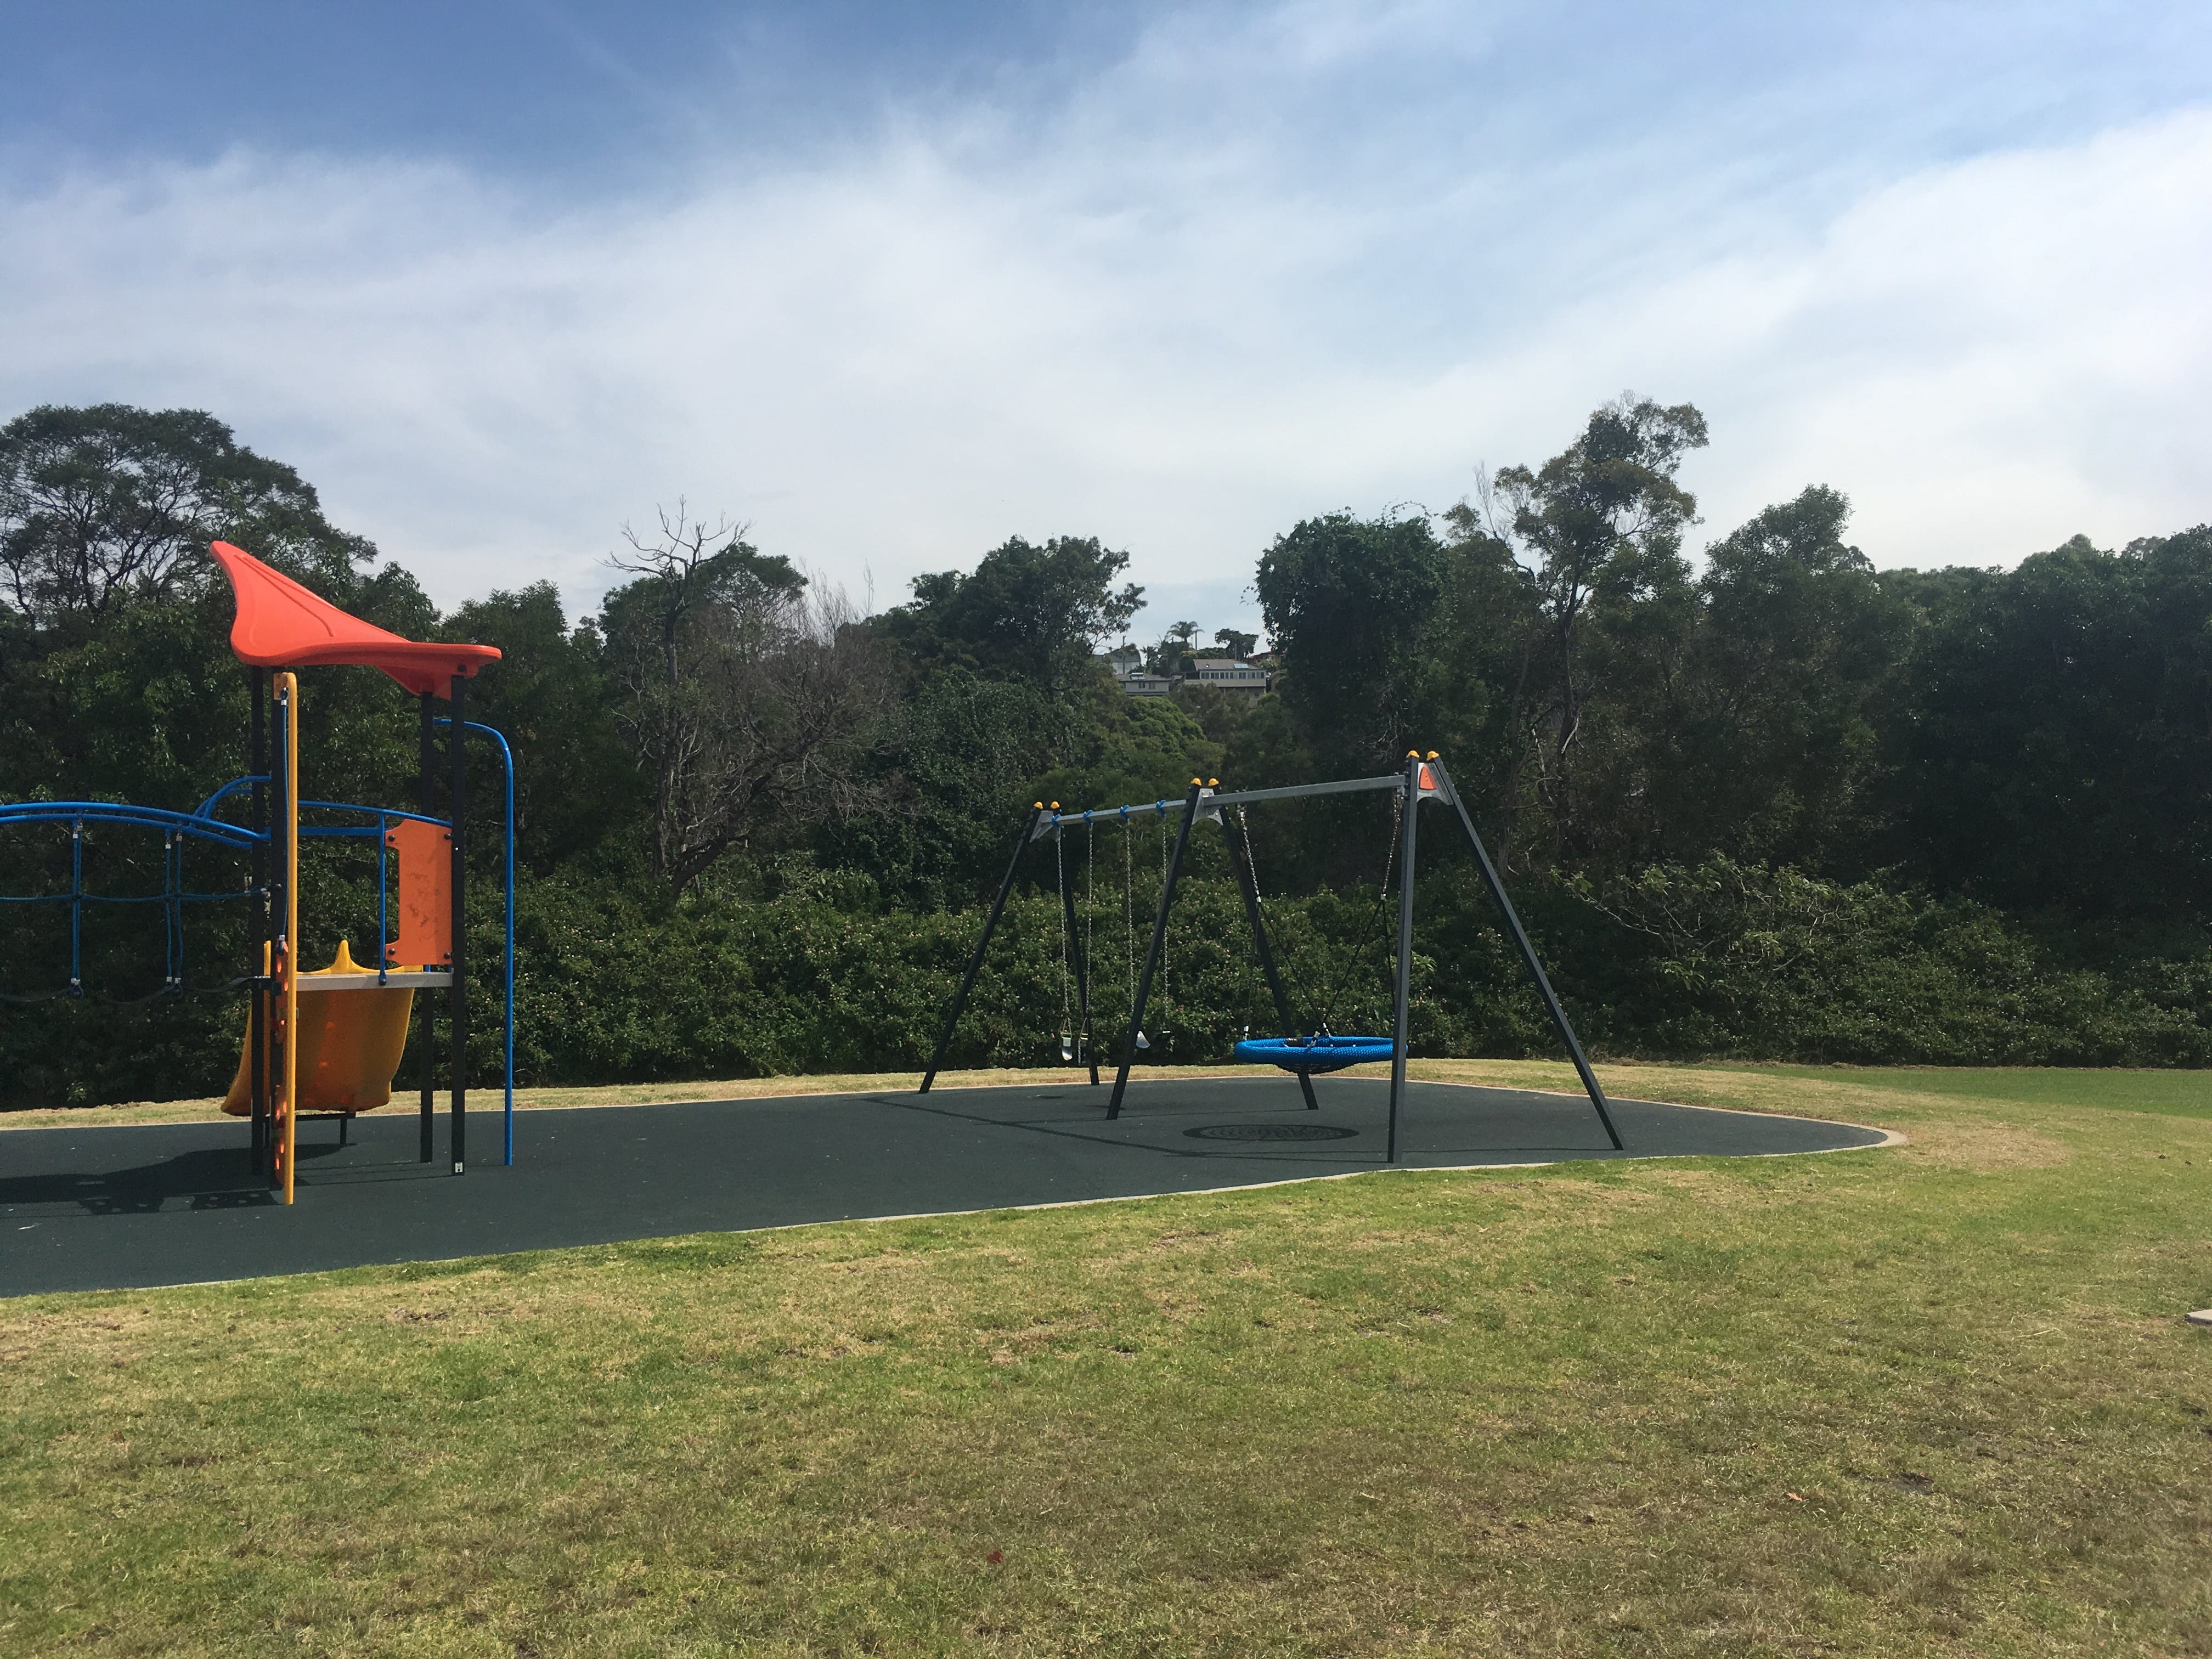 Existing play equipment in reserve